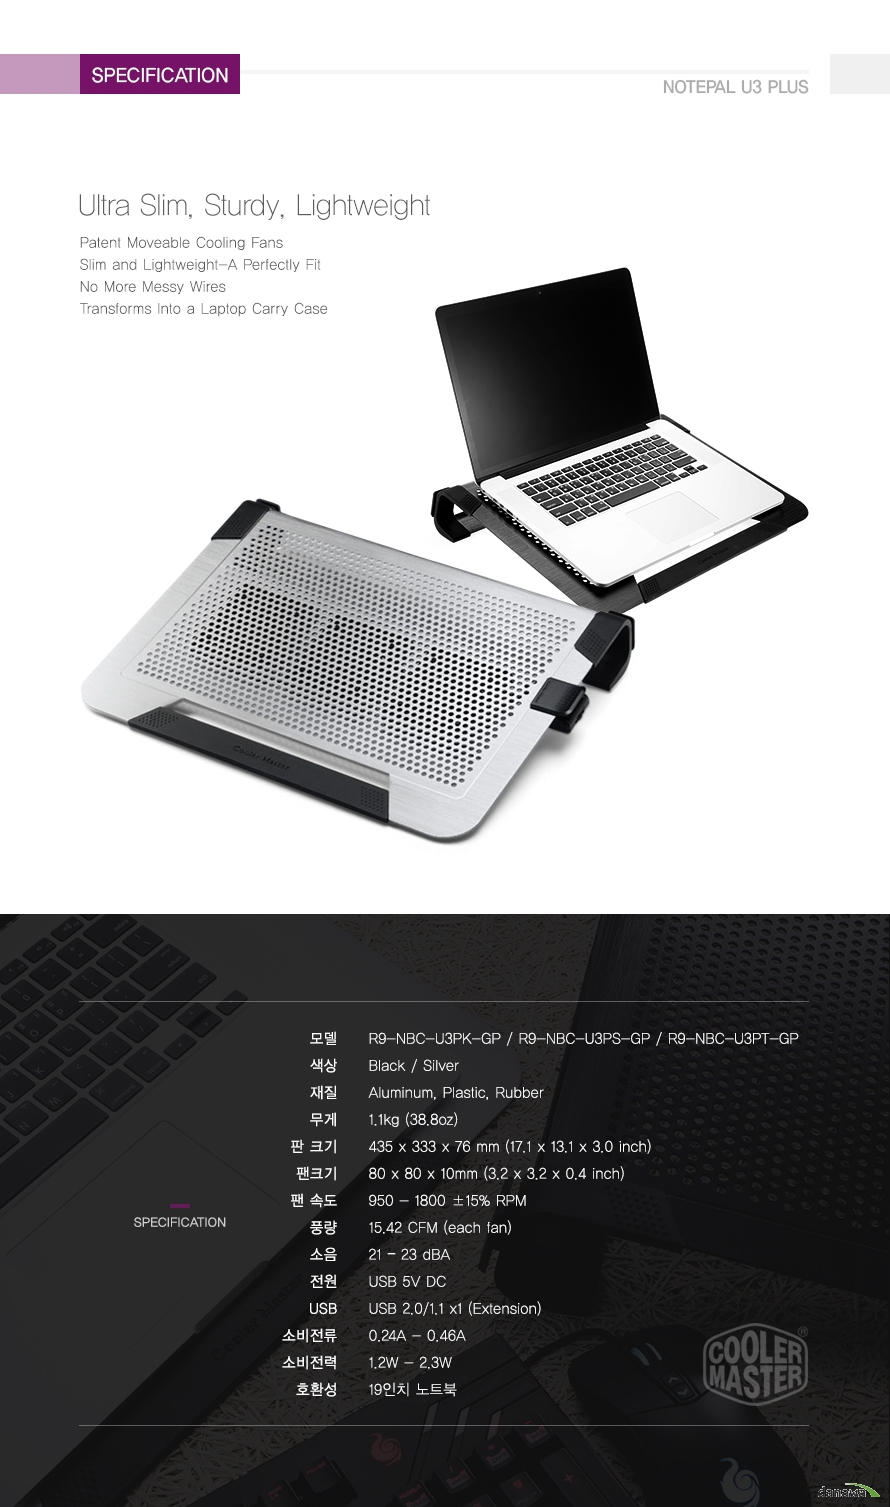 specification Ultra Slim, Sturdy, Lightweight Patent Moveable Cooling FansSlim and Lightweight-A Perfectly FitNo More Messy WiresTransforms Into a Laptop Carry Case모델	R9-NBC-U3PK-GP / R9-NBC-U3PS-GP / R9-NBC-U3PT-GP색상	Black / Silver재질	Aluminum, Plastic, Rubber무게	1.1kg (38.8oz)판 크기	435 x 333 x 76 mm (17.1 x 13.1 x 3.0 inch)팬크기	80 x 80 x 10mm (3.2 x 3.2 x 0.4 inch)팬 속도	950 - 1800 ±15% RPM풍량	15.42 CFM (each fan)소음	21 ? 23 dBA전원	USB 5V DCUSB	USB 2.0/1.1 x1 (Extension)소비전류	0.24A - 0.46A소비전력	1.2W - 2.3W호환성	19인치 노트북